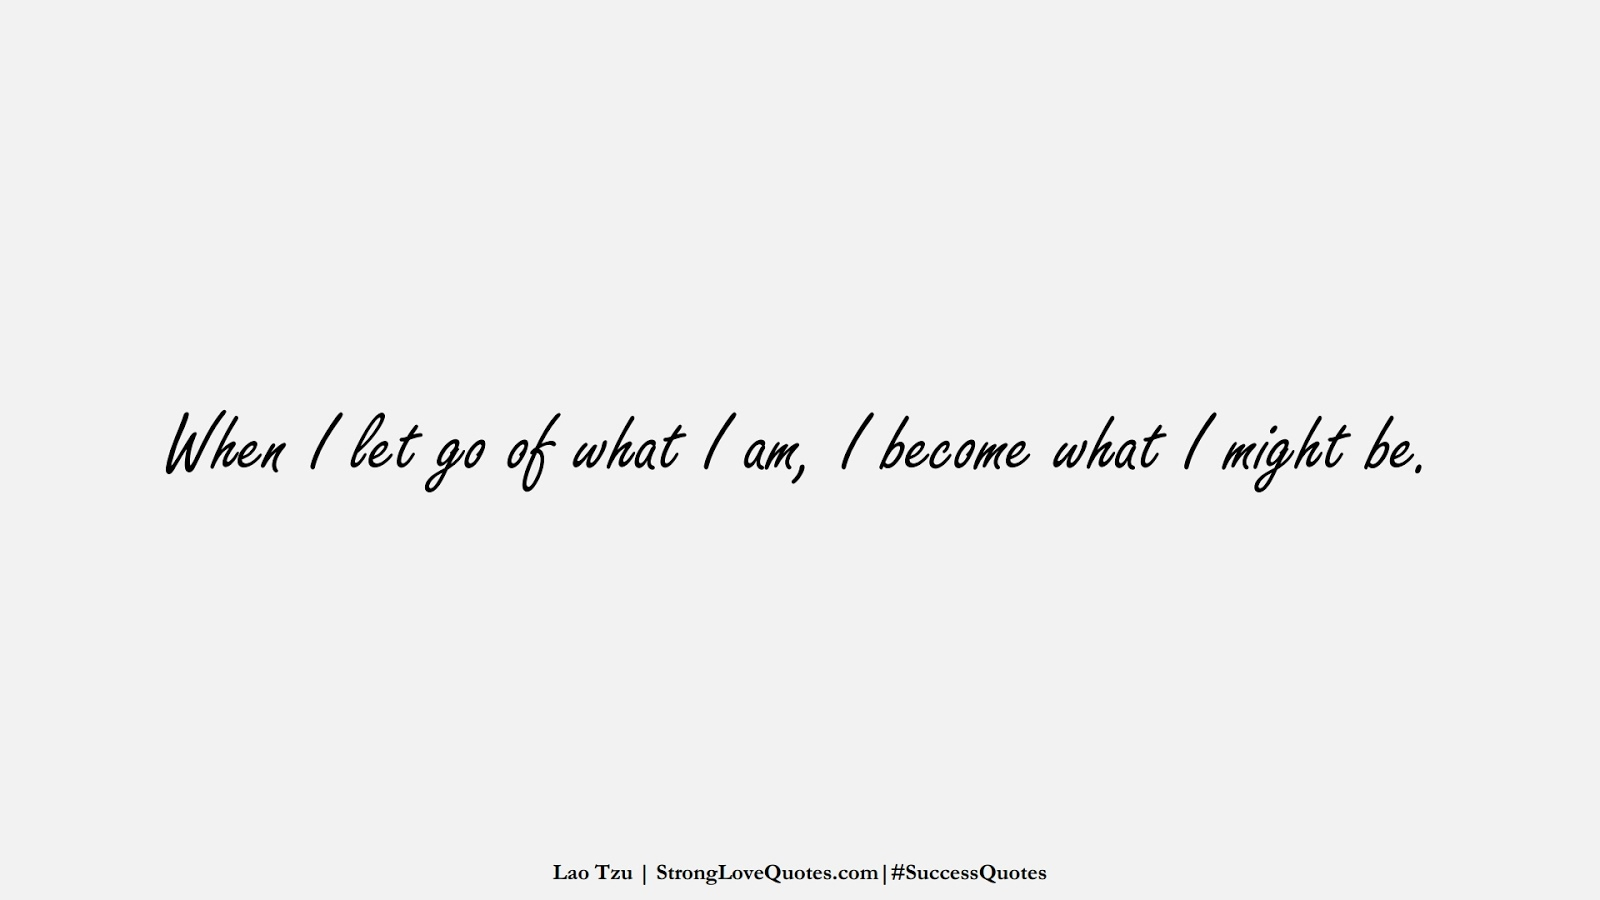 When I let go of what I am, I become what I might be. (Lao Tzu);  #SuccessQuotes